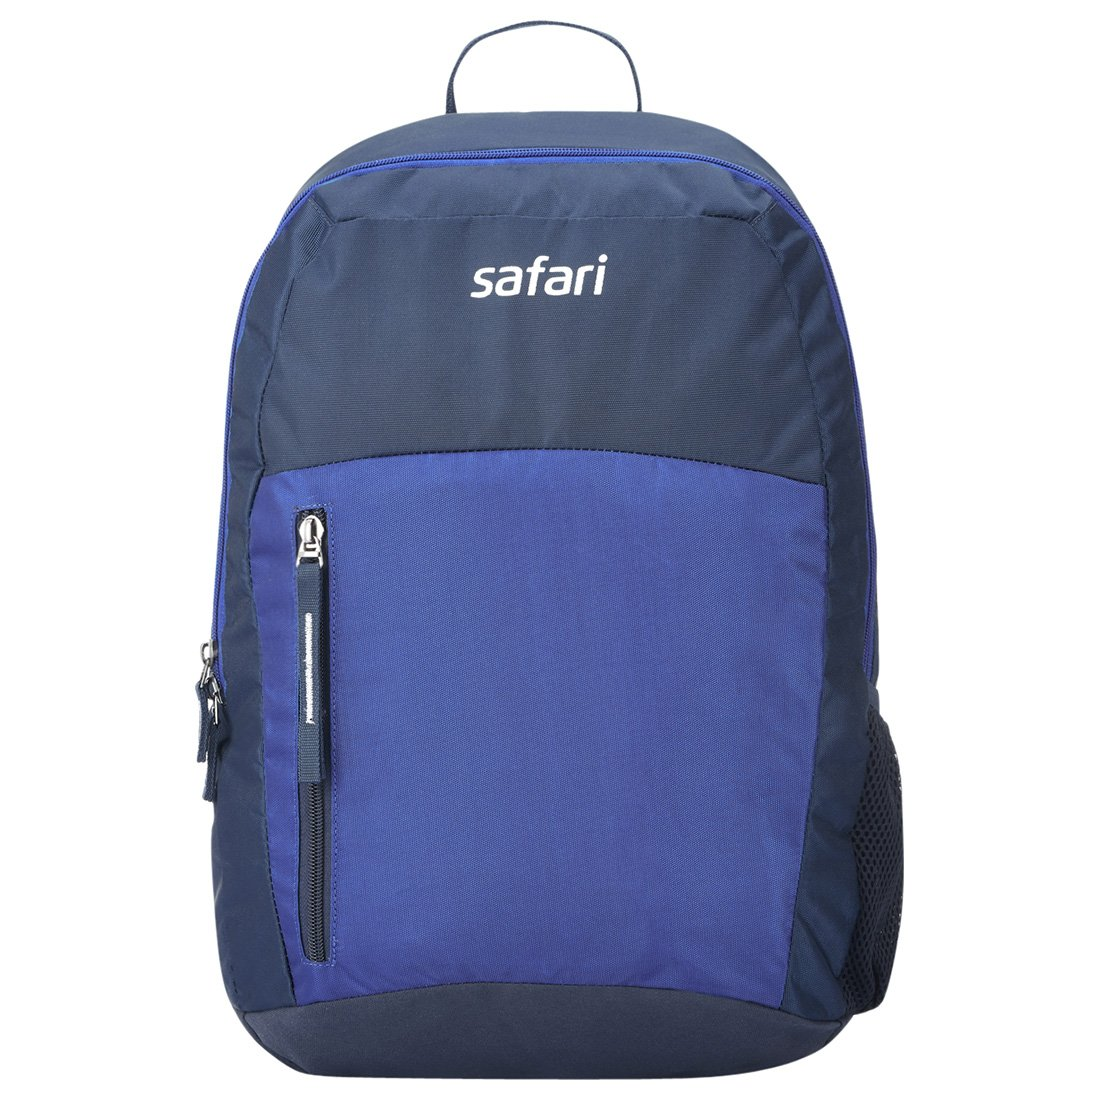 Safari 26 Ltrs Blue Casual Backpack